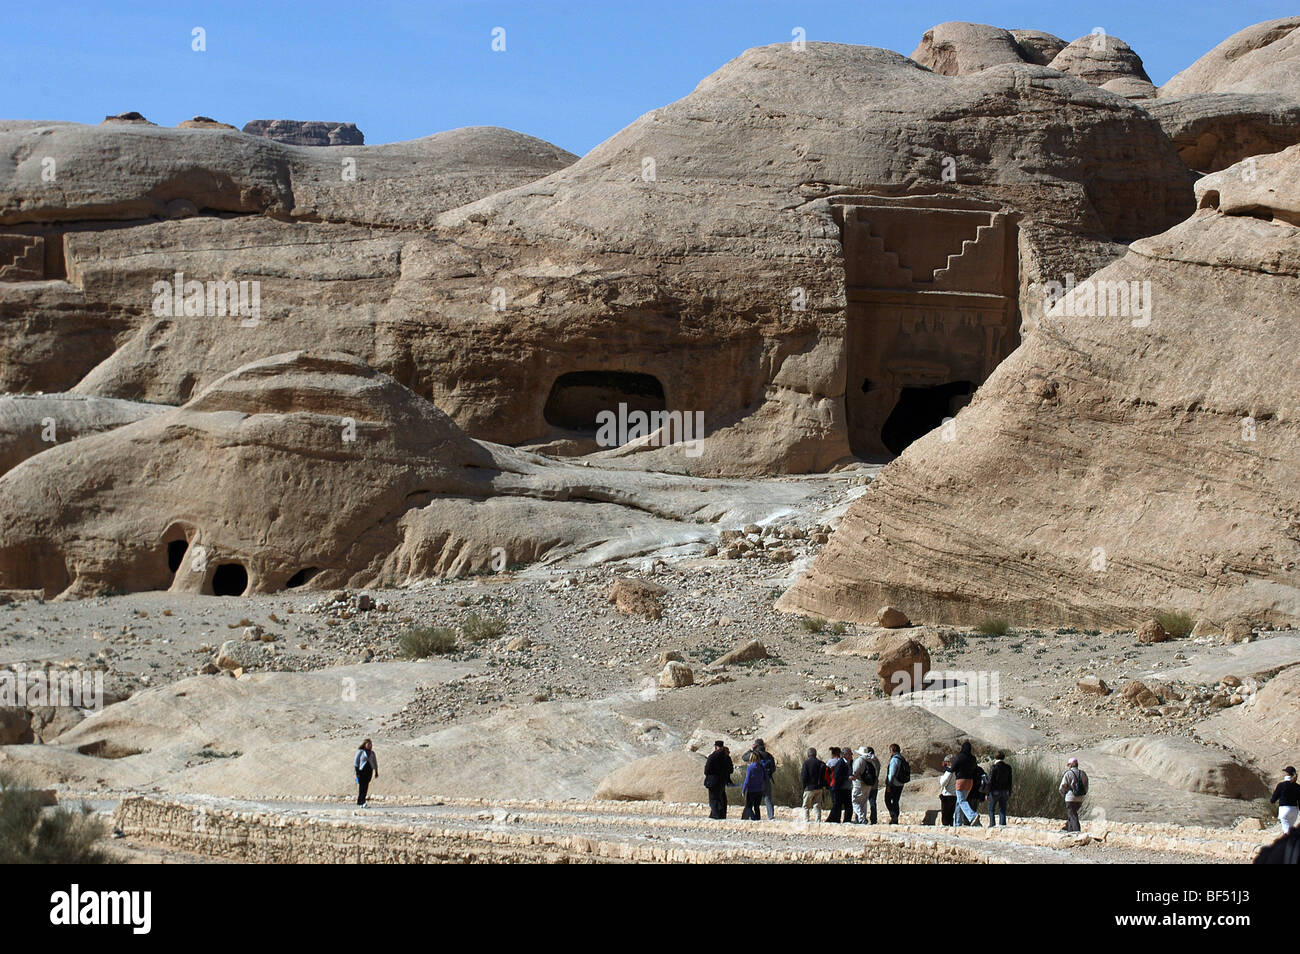 Tourists on the way to the entrance to Petra, southern Jordan admire some of the tombs. Stock Photo